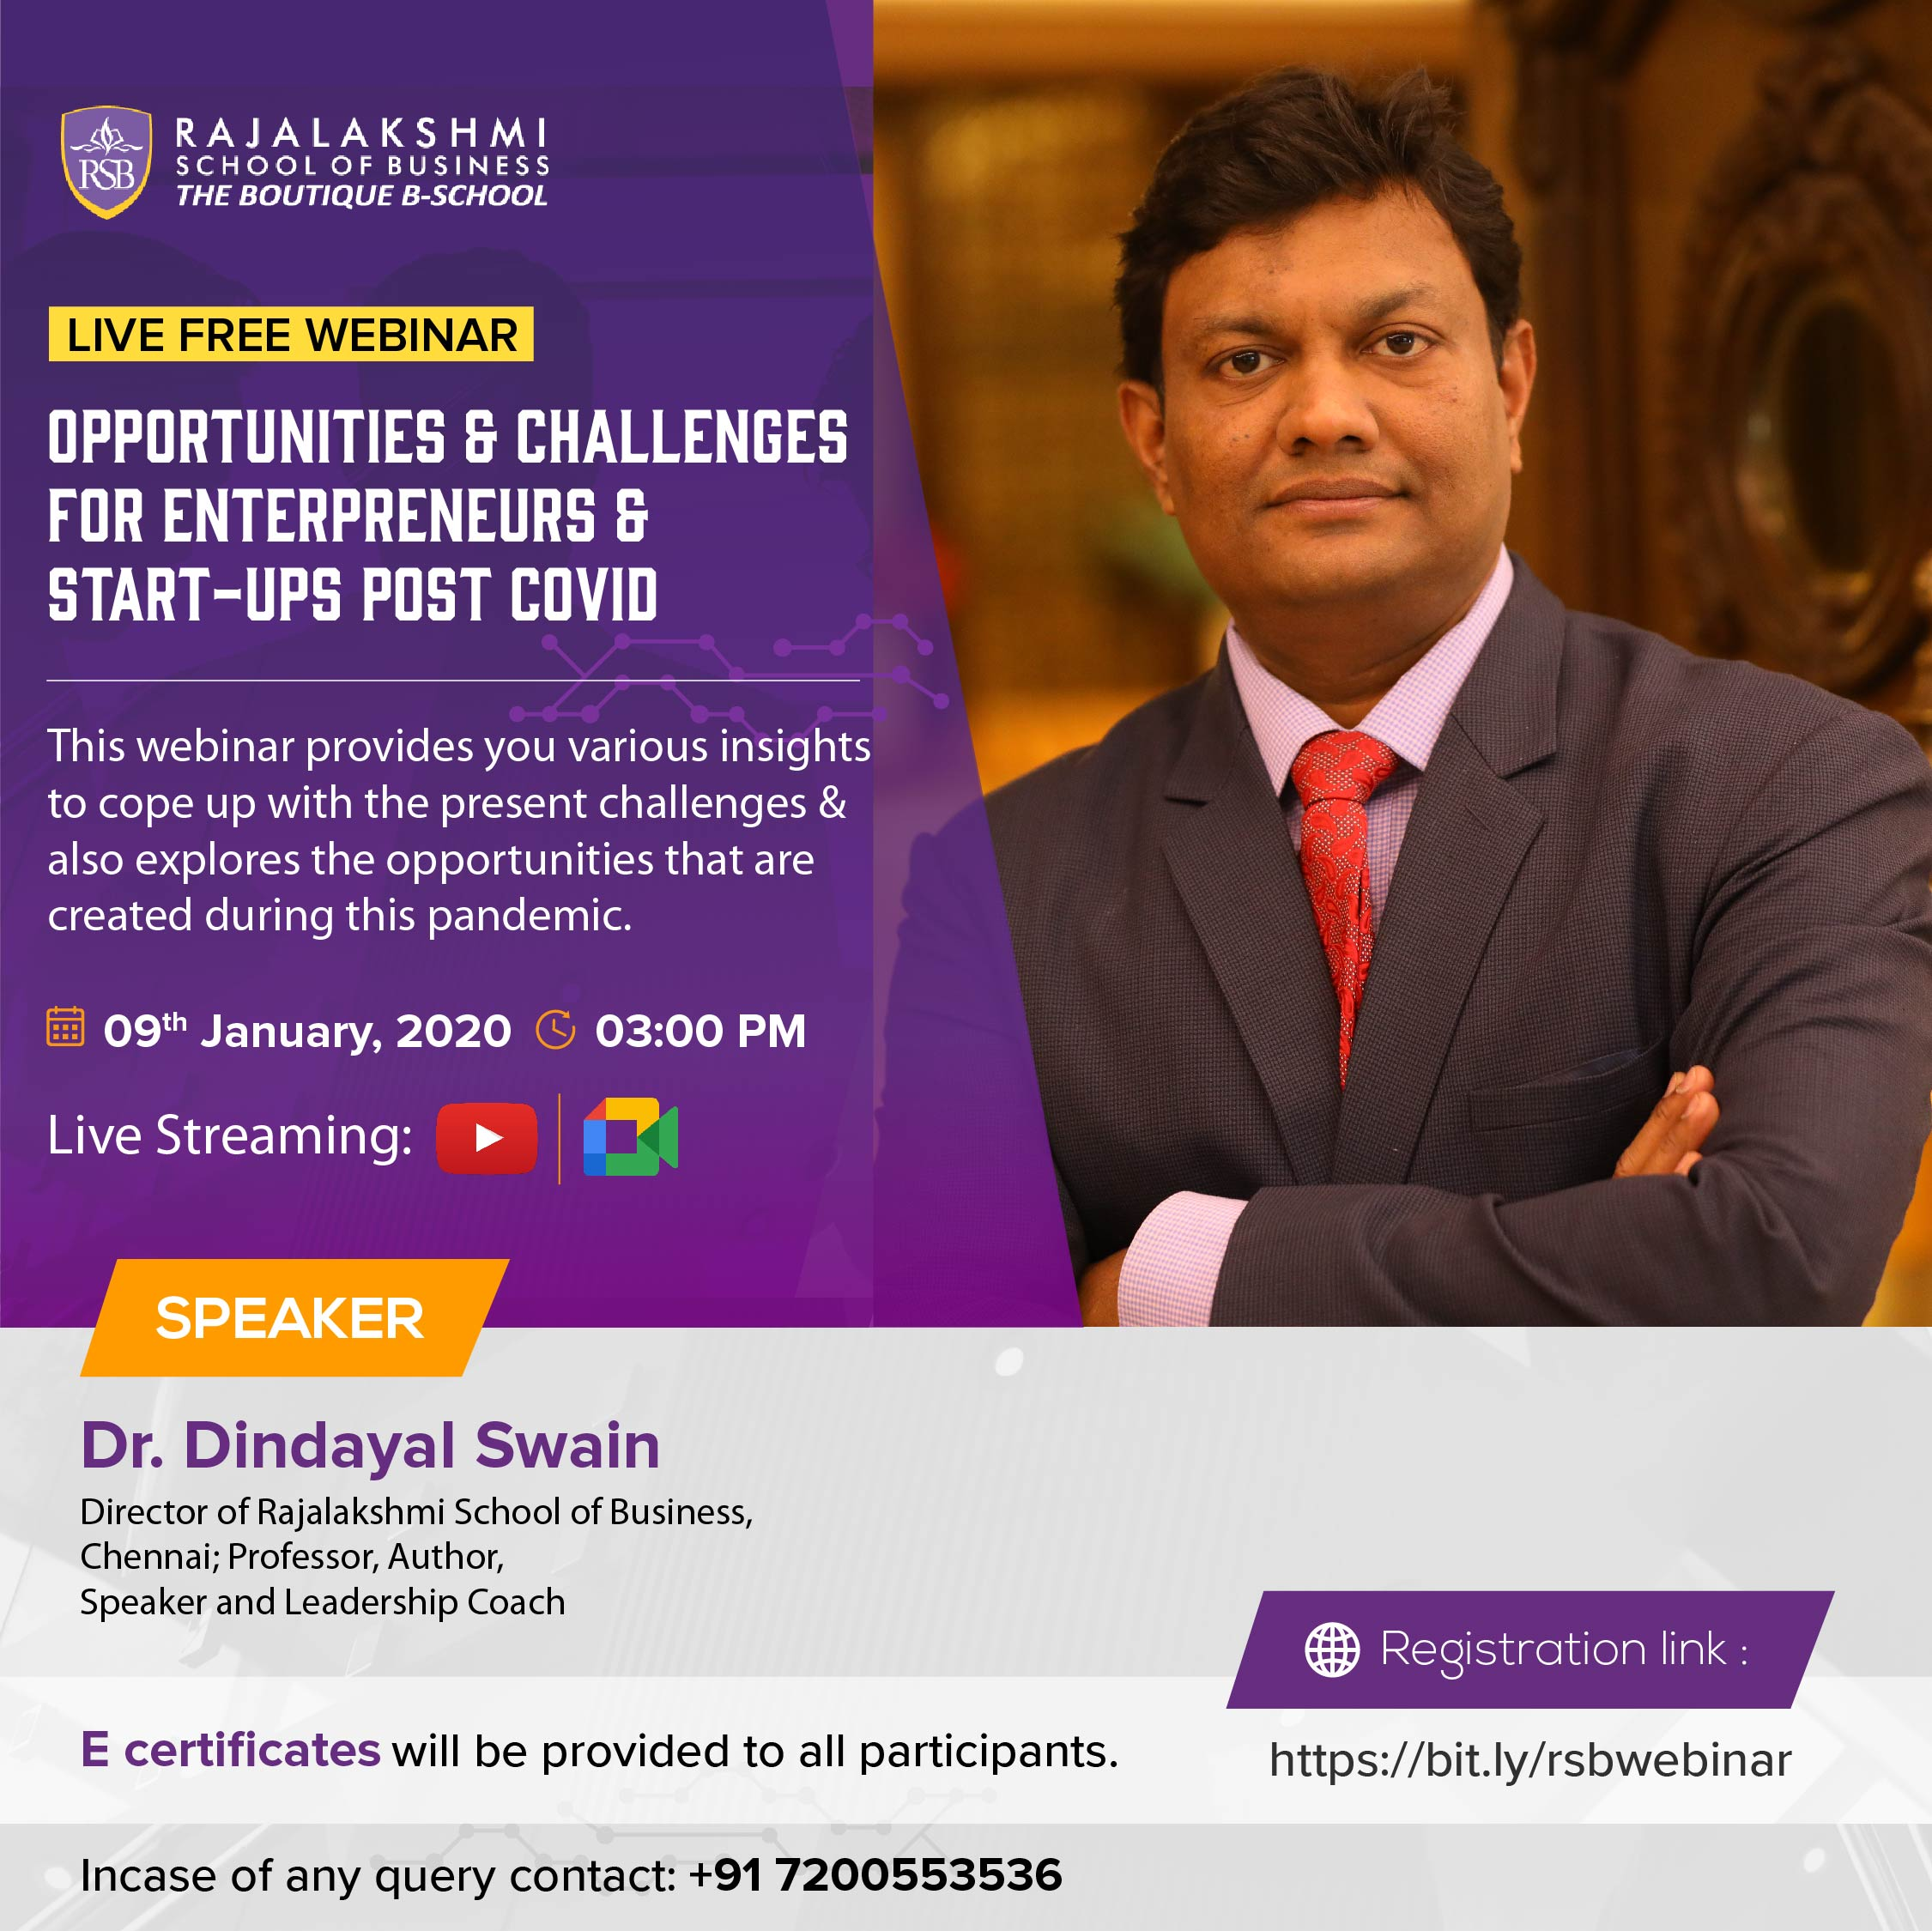 Opportunities and Challenges for Entrepreneurs and Startups Post COVID